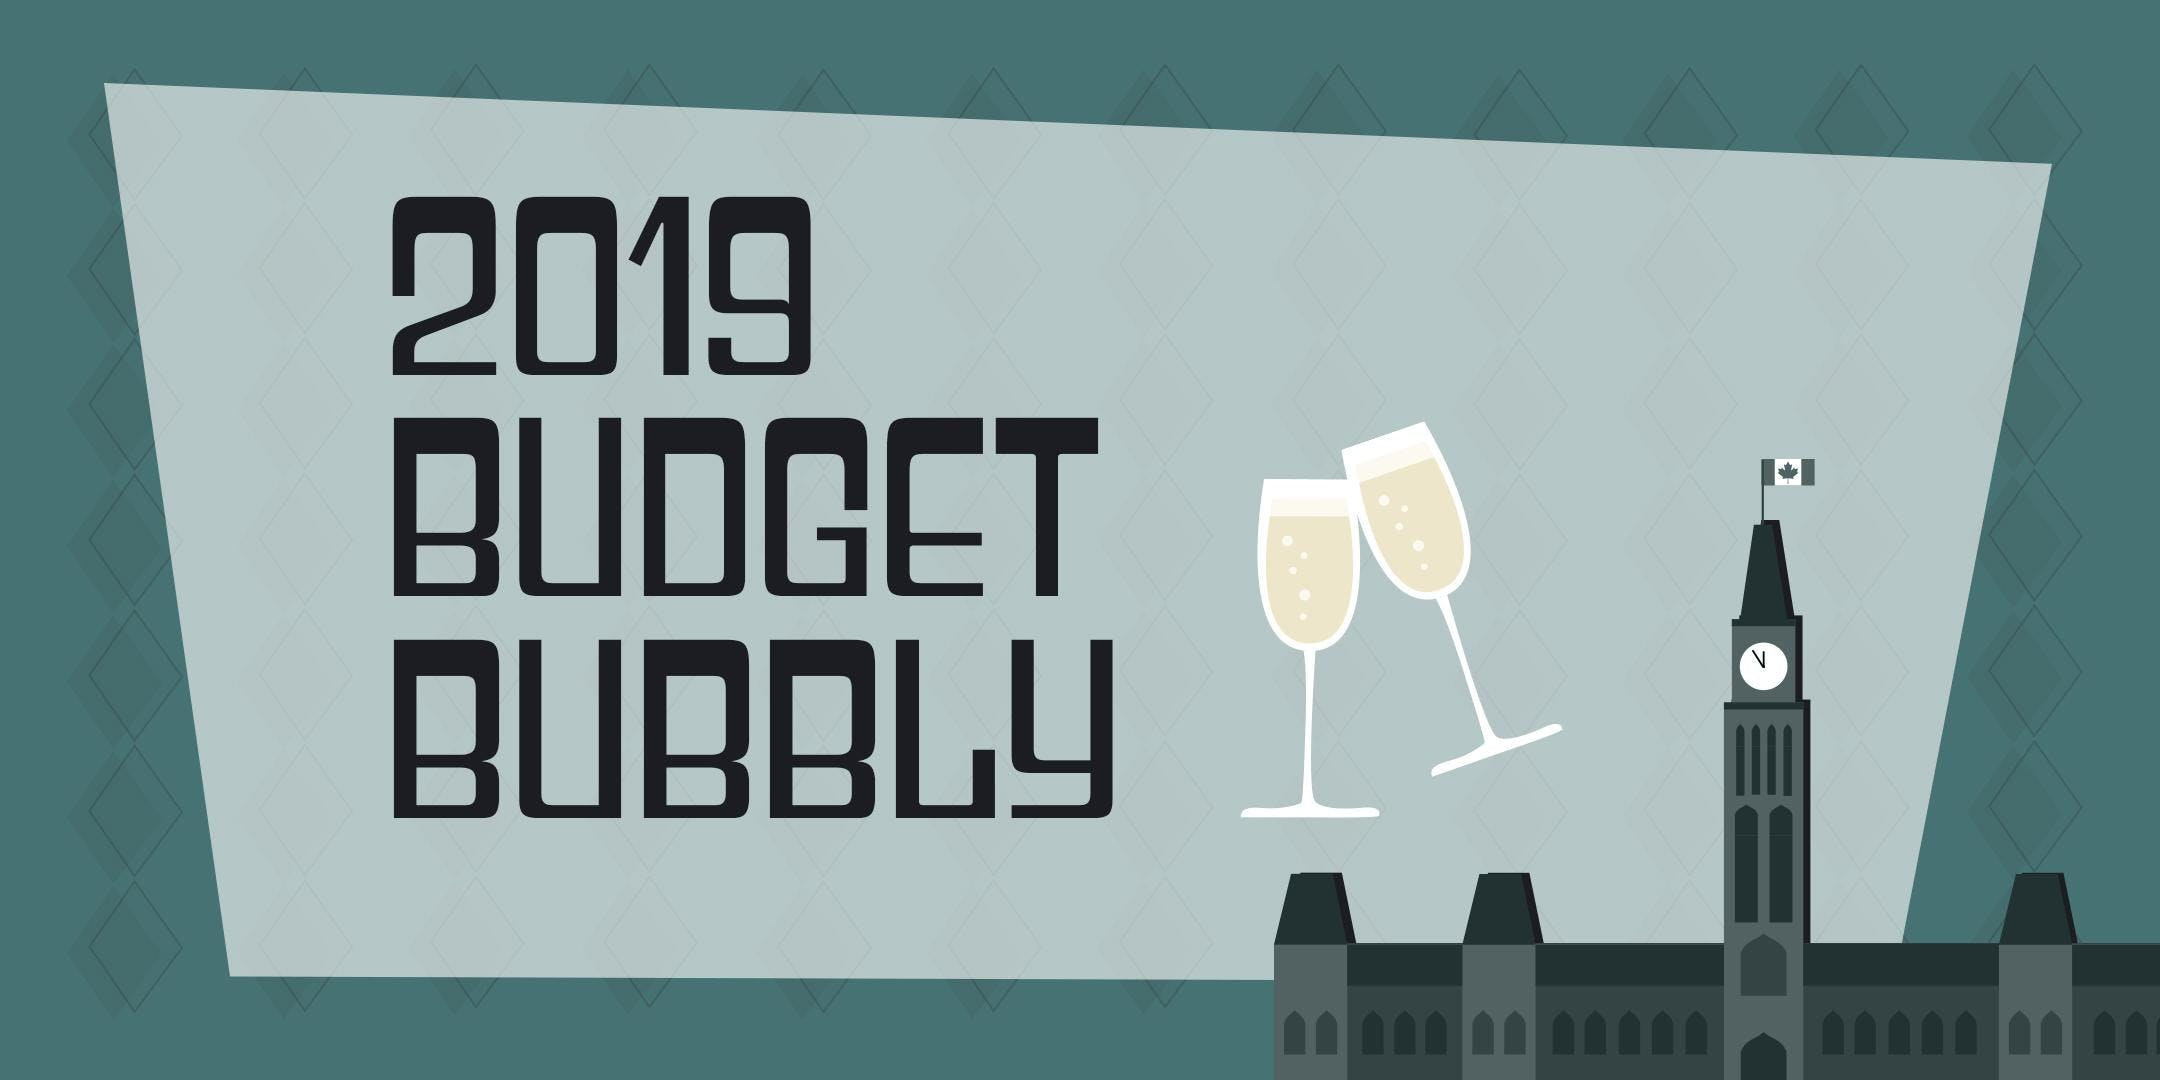 The Budget Bubbly